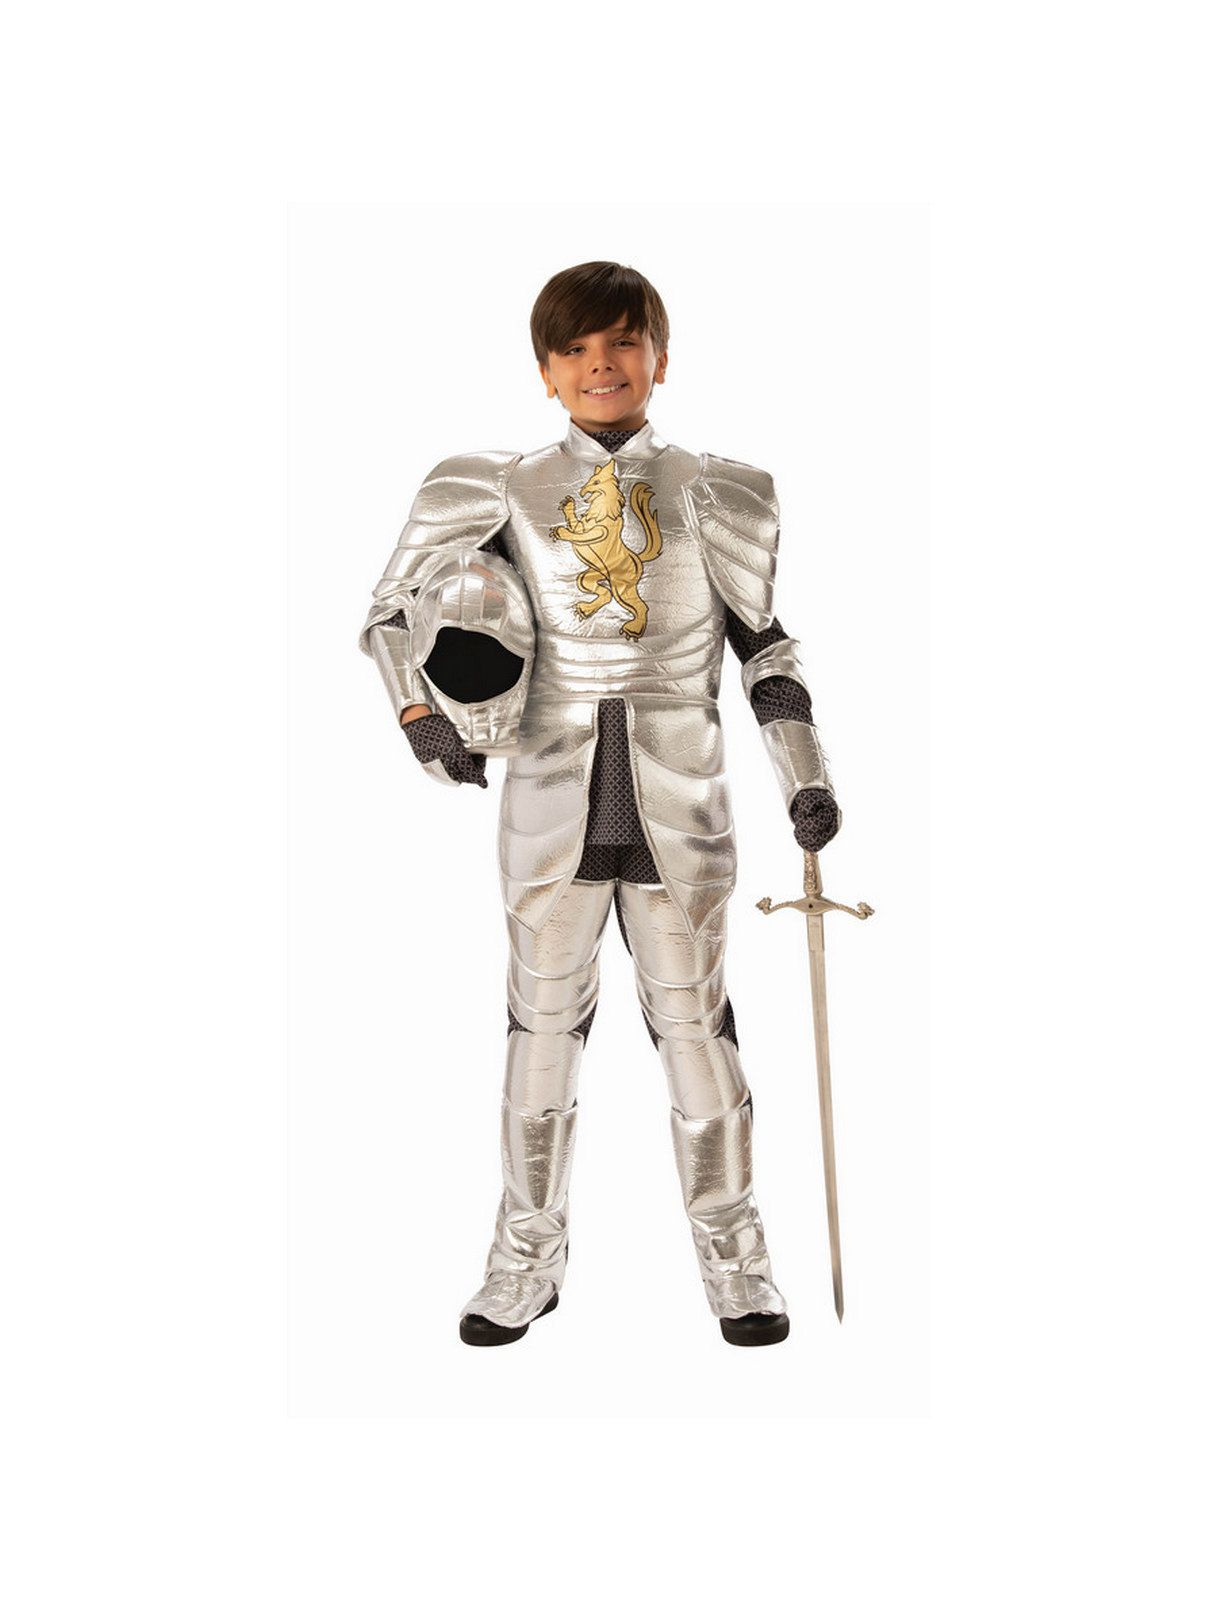 Knight Costume For Children Boys Costumes For 2018 Wholesale